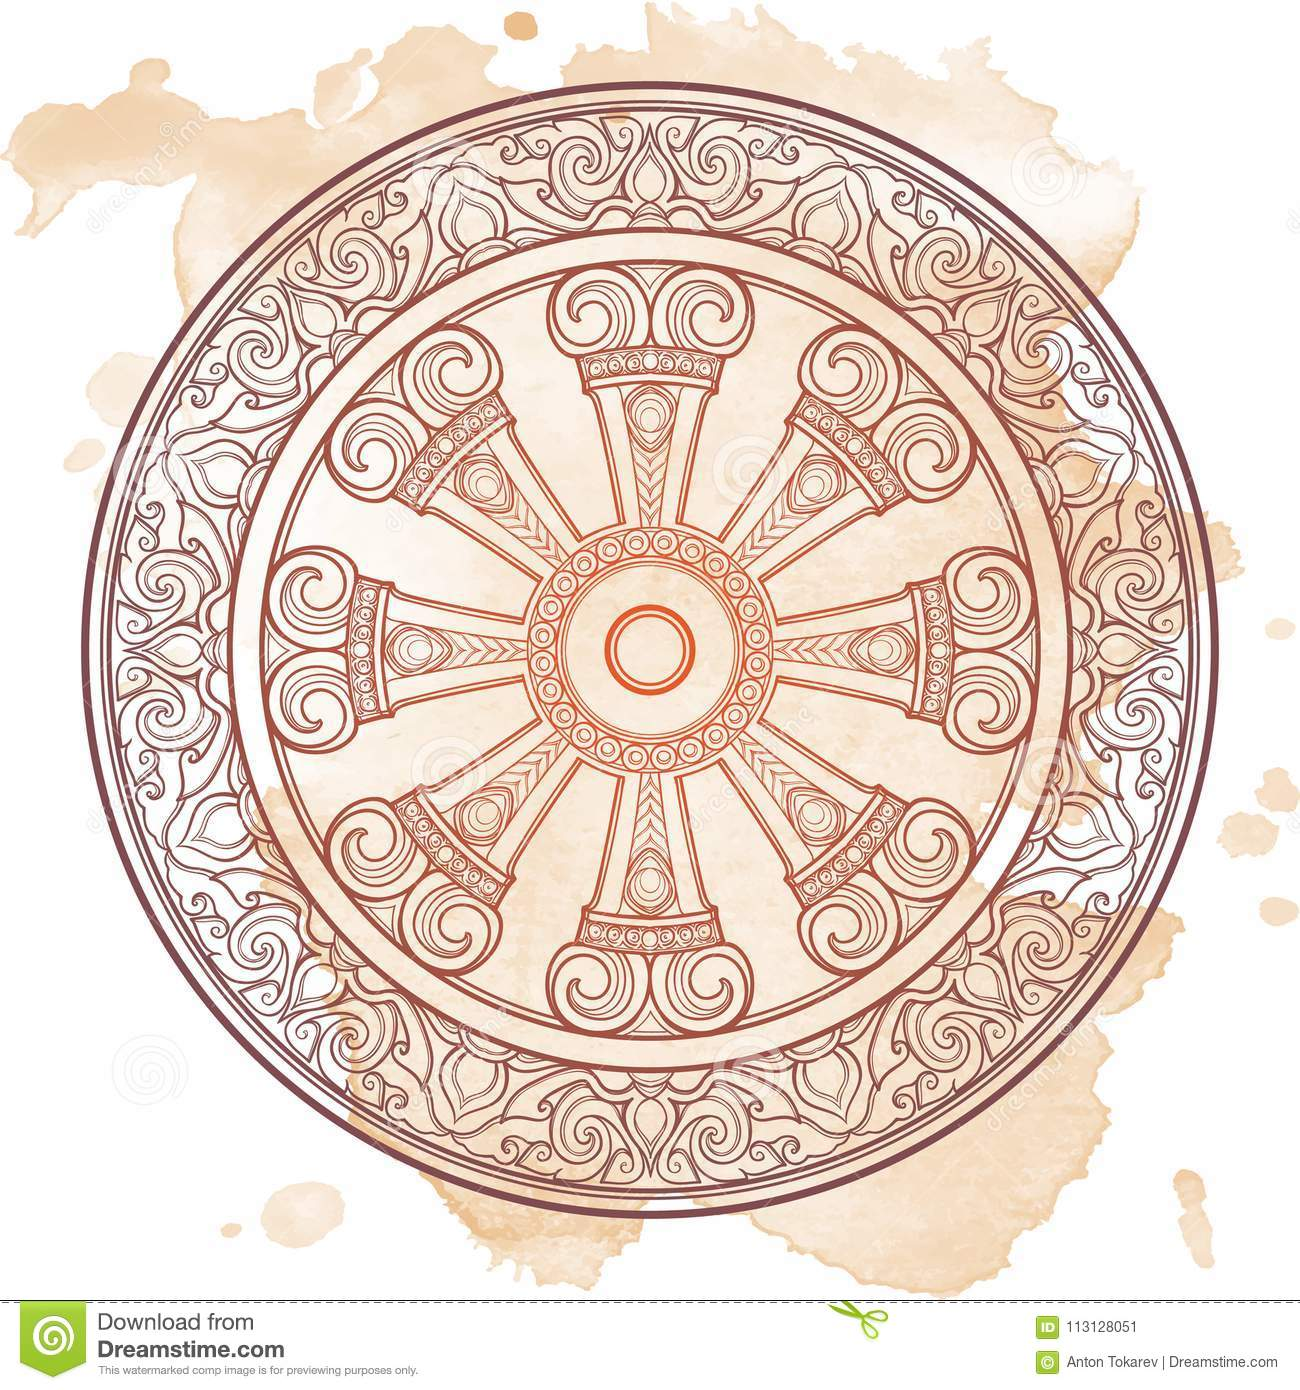 Dharma wheel dharmachakra symbol of buddhas teachings on the path symbol of buddhas teachings on the path to enlightenment liberation from the karmic buycottarizona Image collections